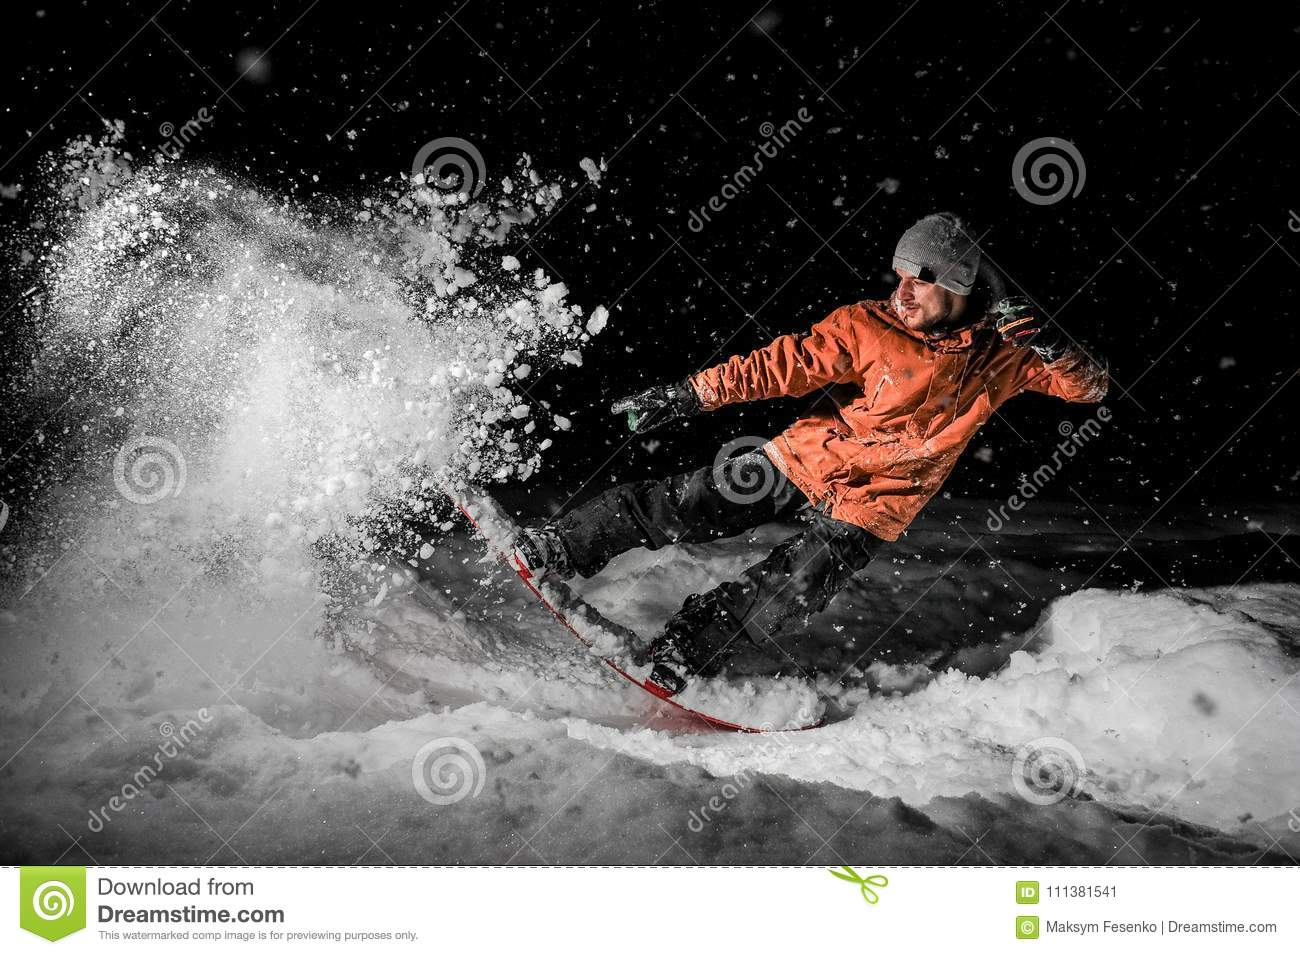 Young freeride snowboarder jumping in snow at night